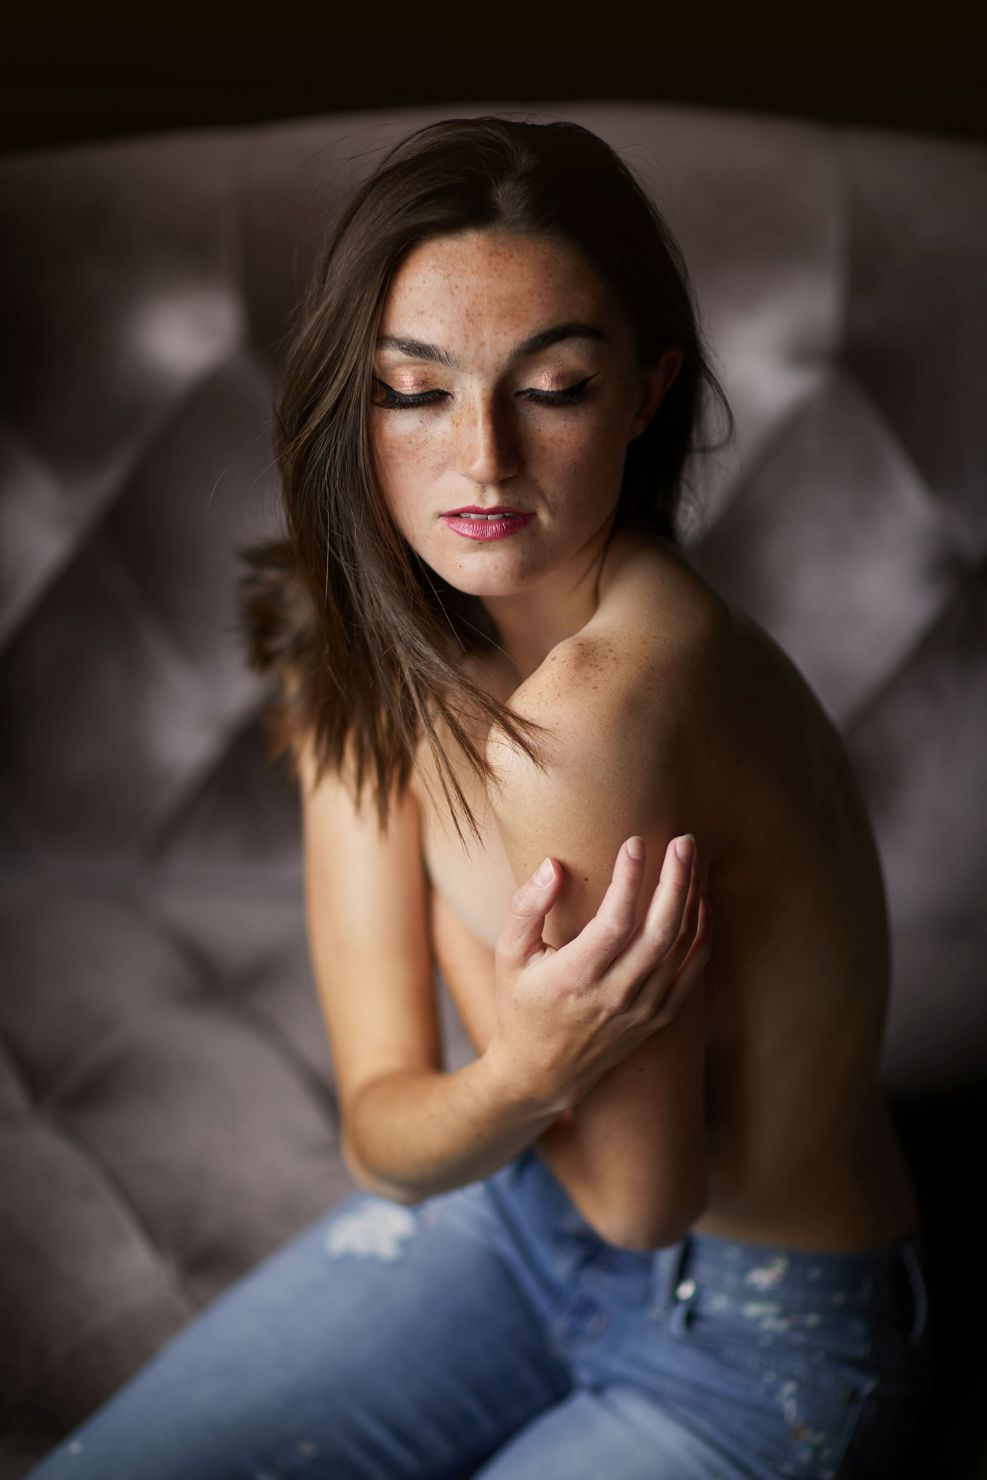 sexy chicago photos boudoir makeup - Boudoir Photography and the Art of Storytelling.